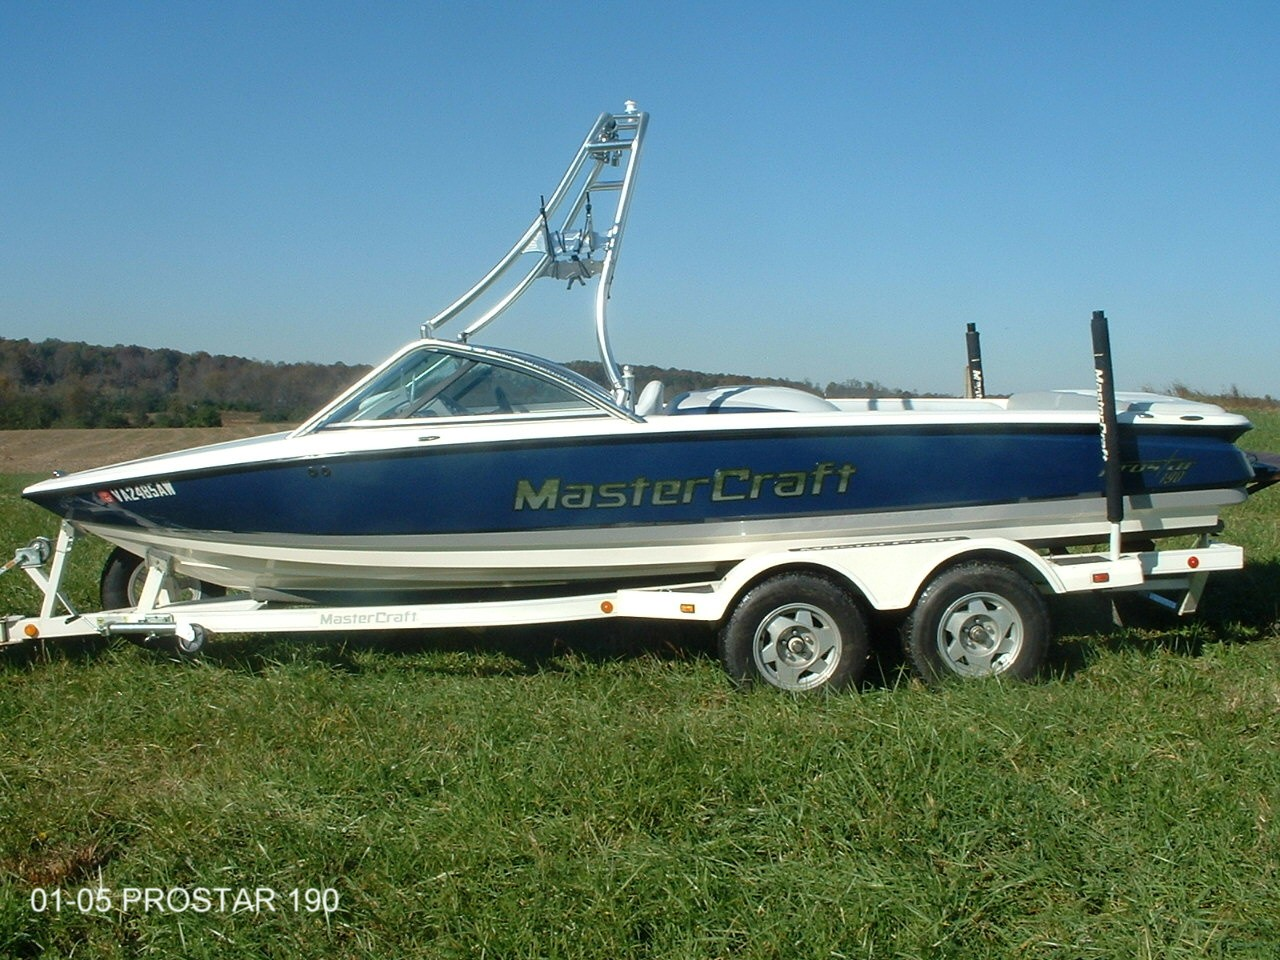 main view of 01 - 05 mastercraft prostar 190 wakeboard boat with new dimension towers